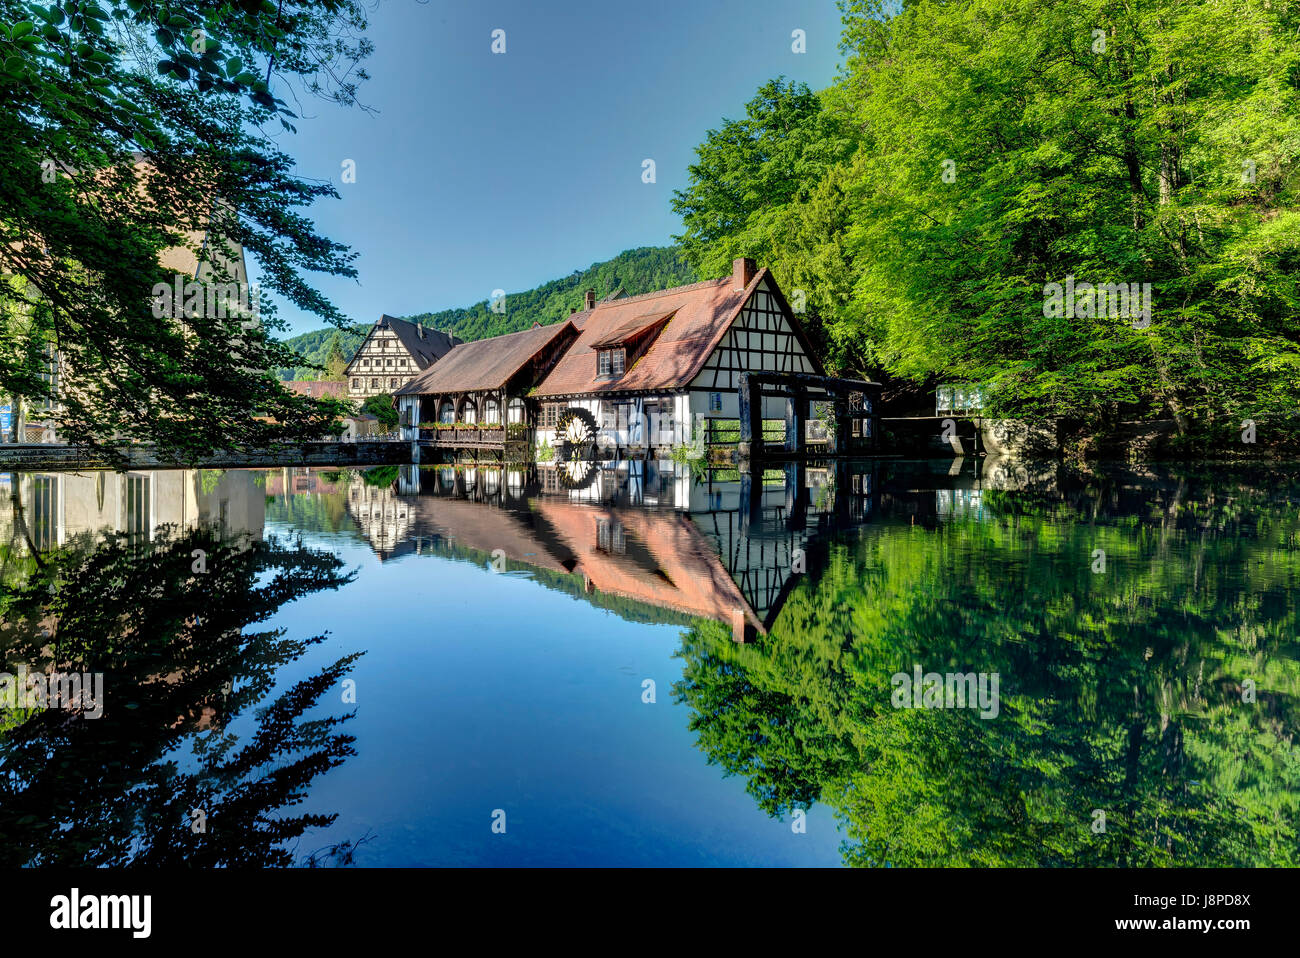 Fountain of the river Blau, Blautopf, Blaubeuren, Swabian Alb. - Stock Image